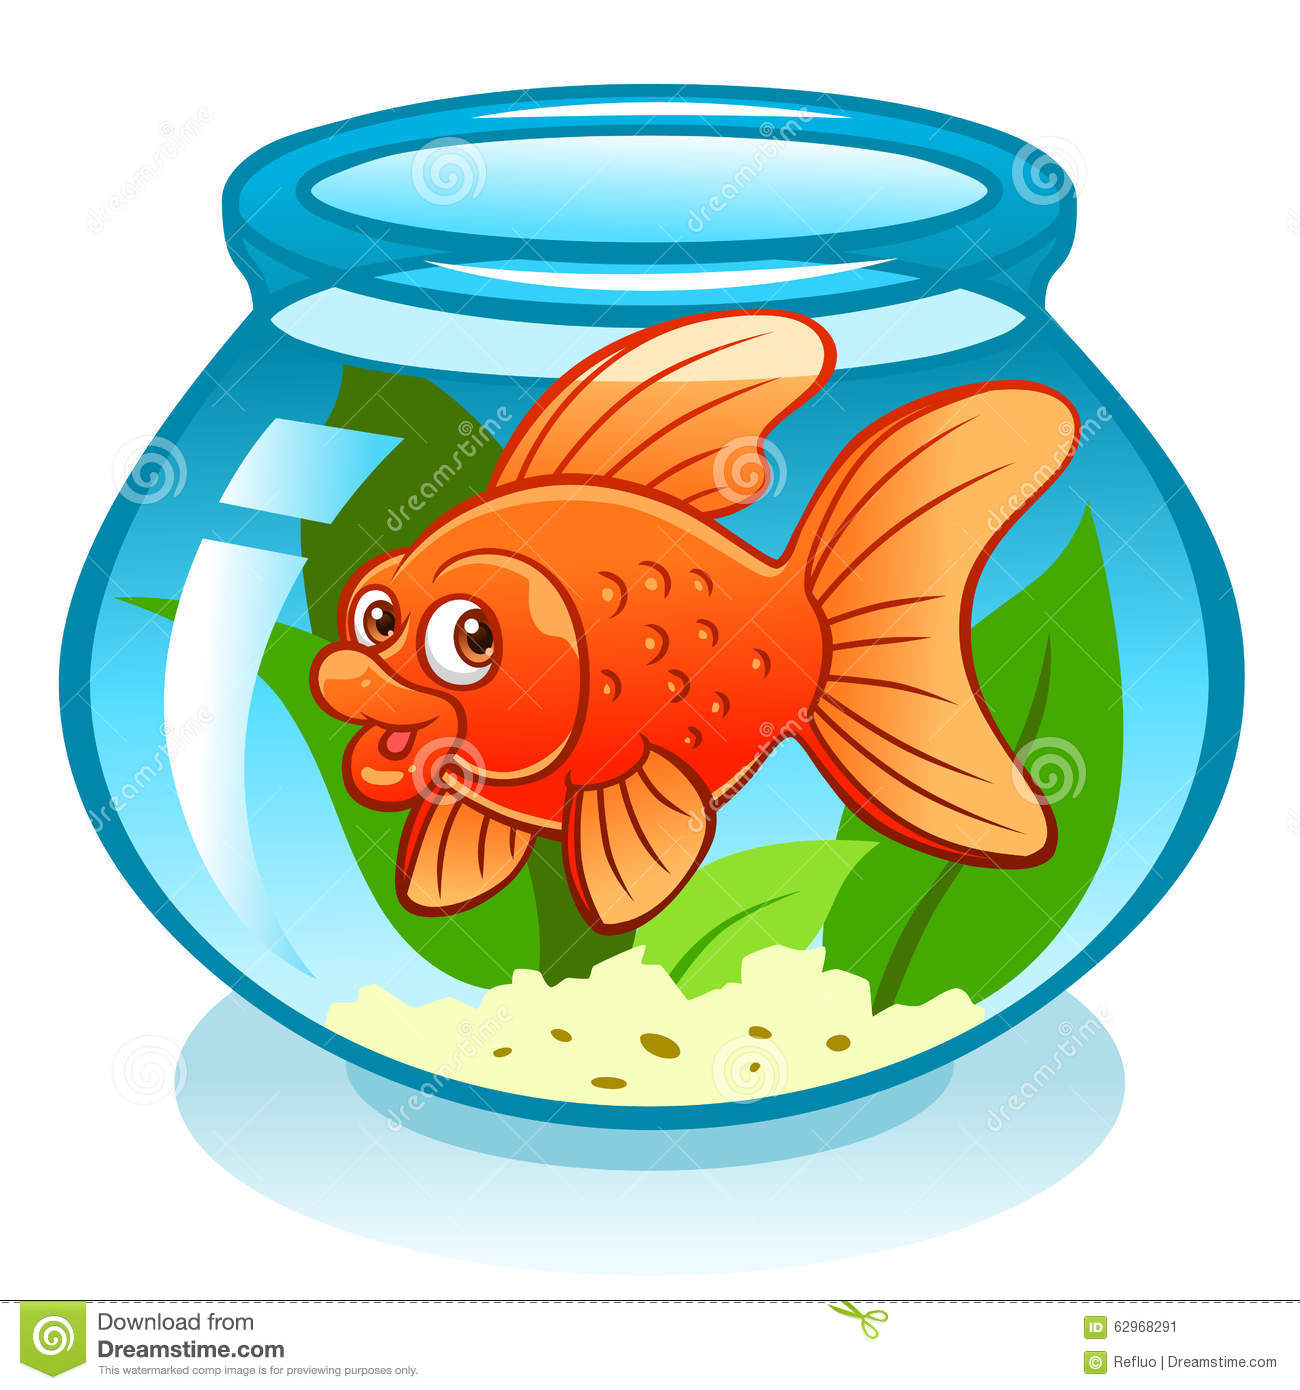 Aquarium avec le poisson rouge illustration de vecteur for Aquarium poisson rouge dessin